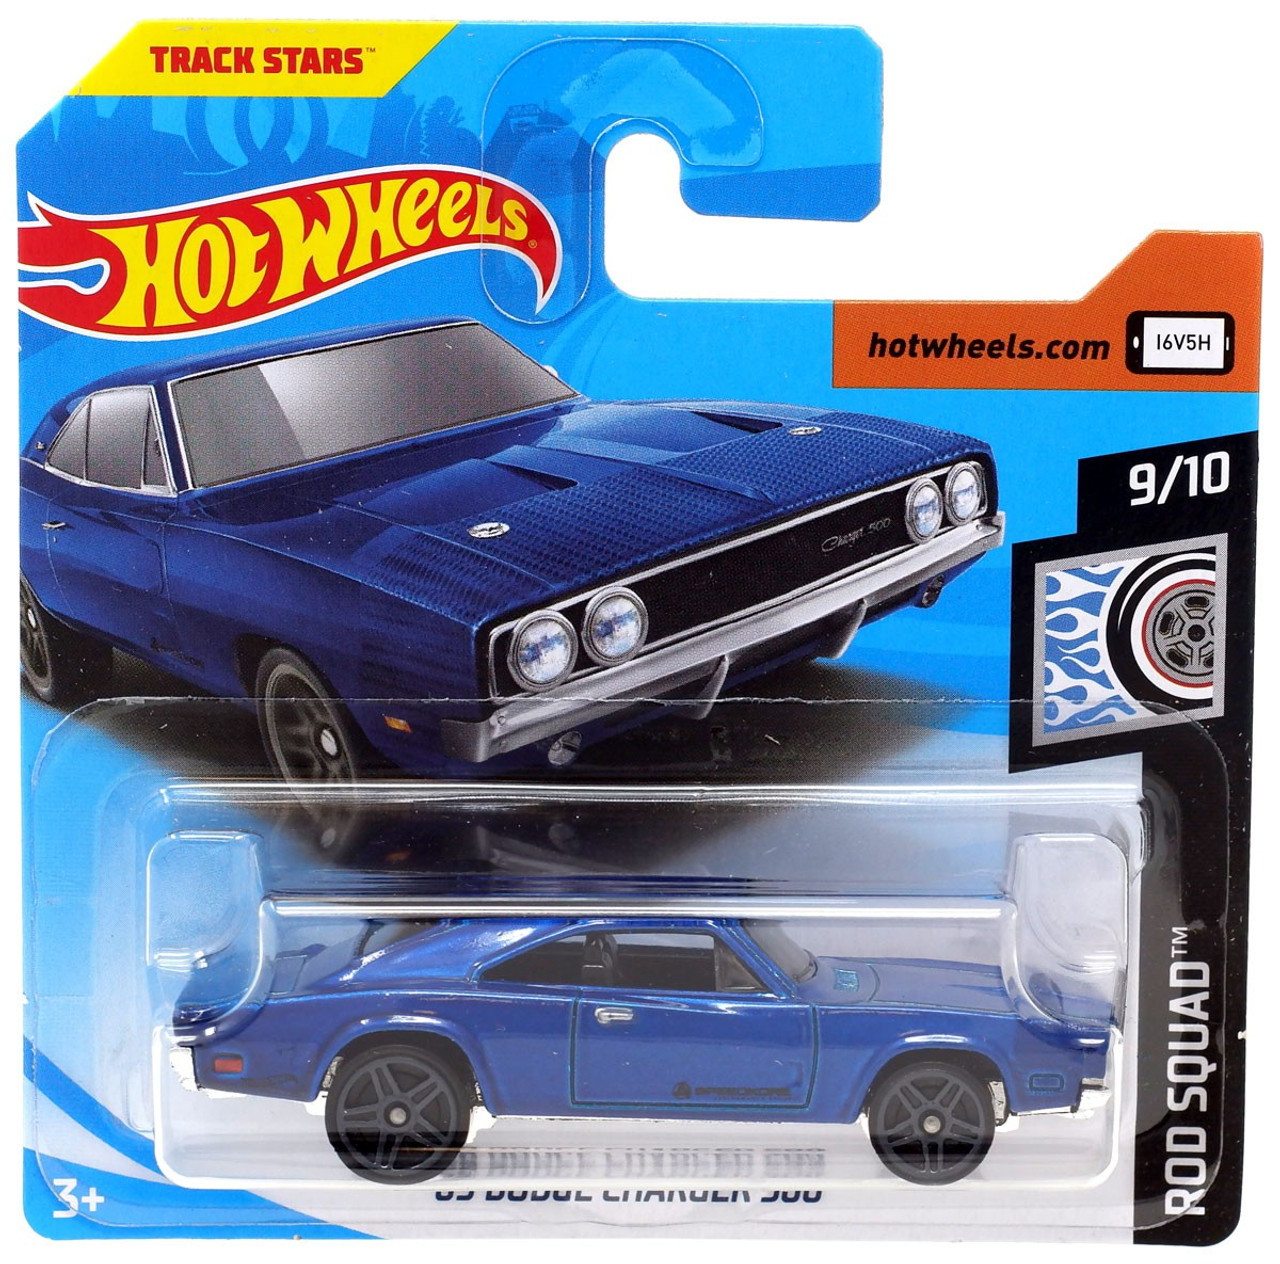 Ncis Team Dodge Charger Roblox Hot Wheels Rod Squad 69 Dodge Charger 500 164 Die Cast Car Fyd94 910 Mattel Toys Toywiz